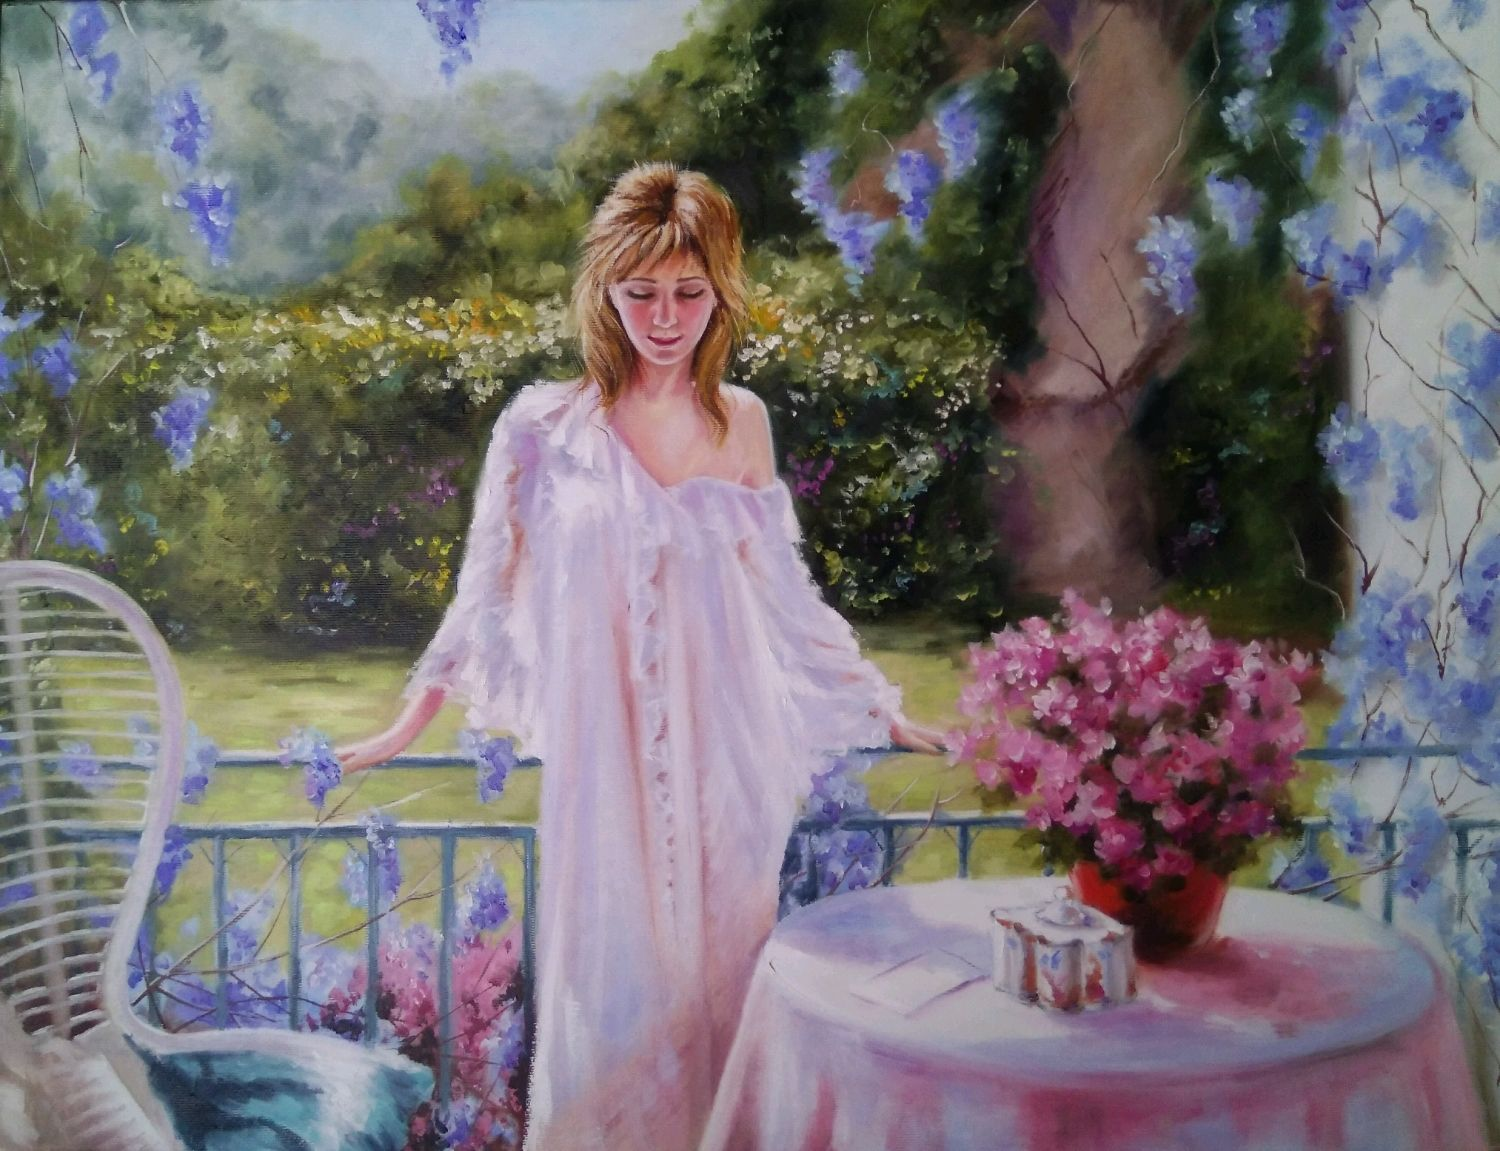 Oil painting with a girl Summer heat, Pictures, Zhitomir,  Фото №1